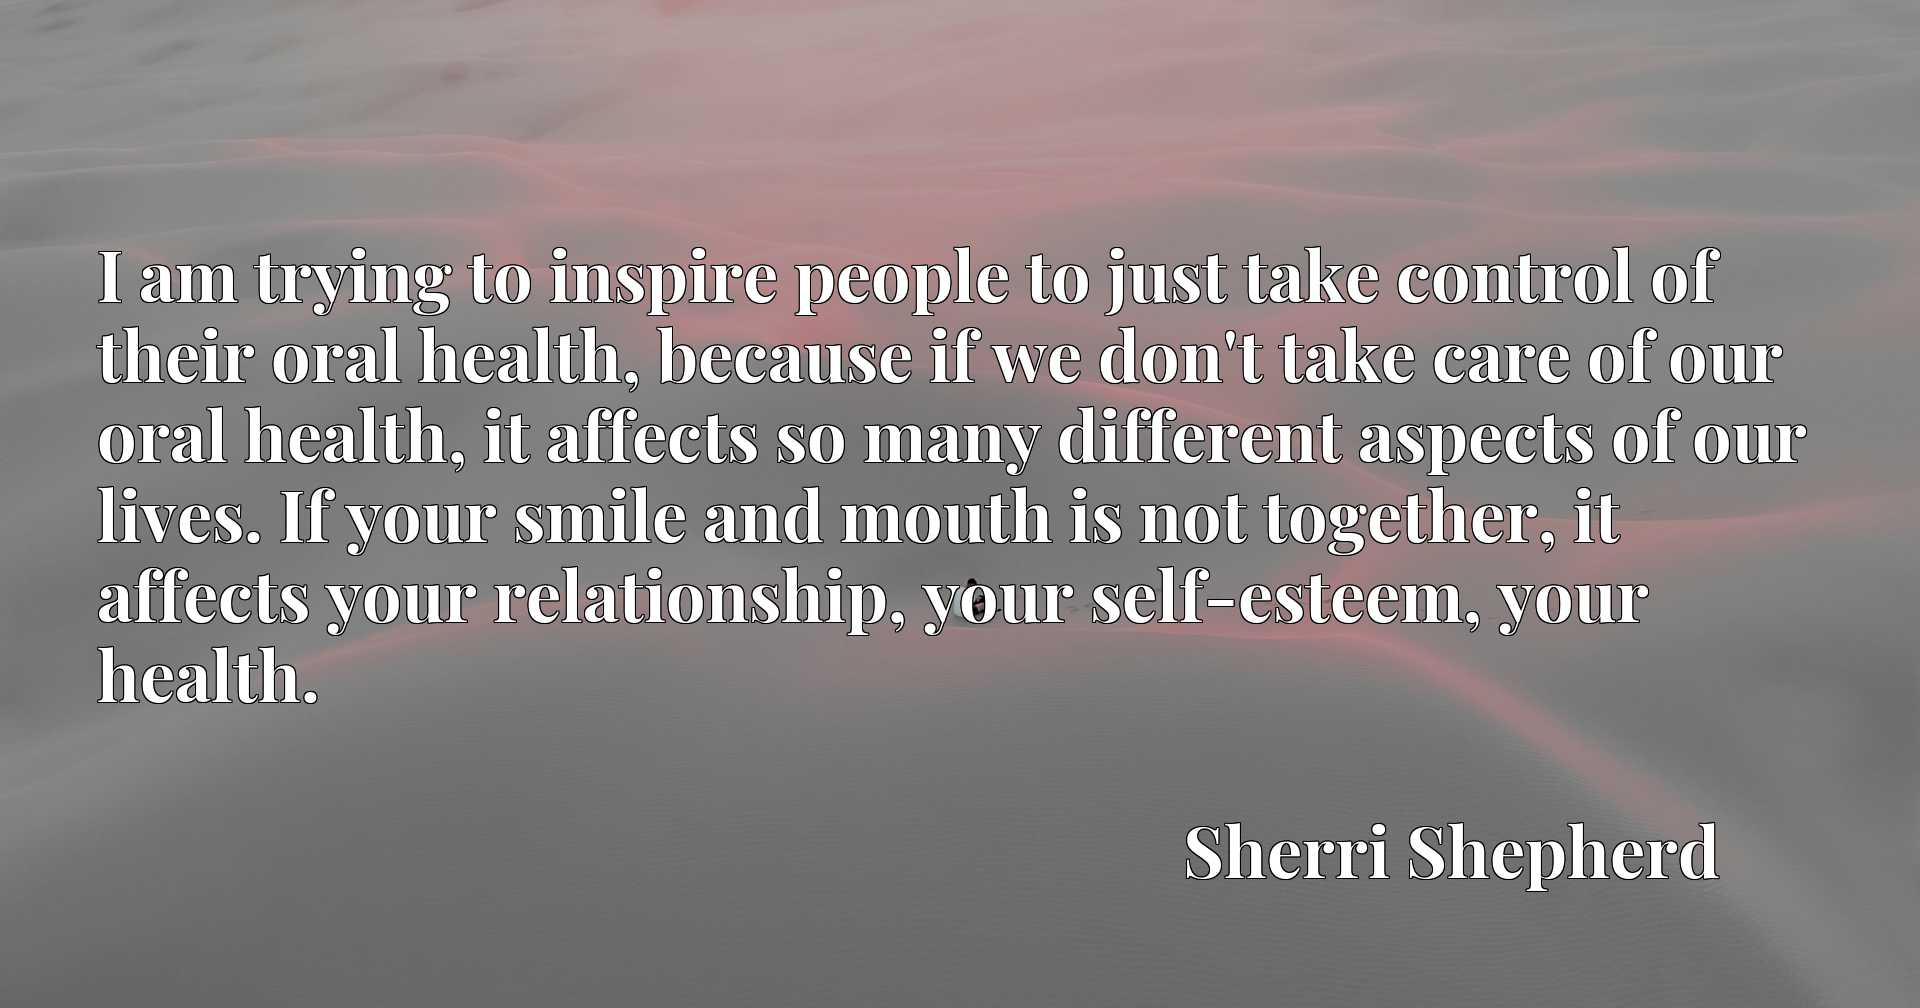 I am trying to inspire people to just take control of their oral health, because if we don't take care of our oral health, it affects so many different aspects of our lives. If your smile and mouth is not together, it affects your relationship, your self-esteem, your health.